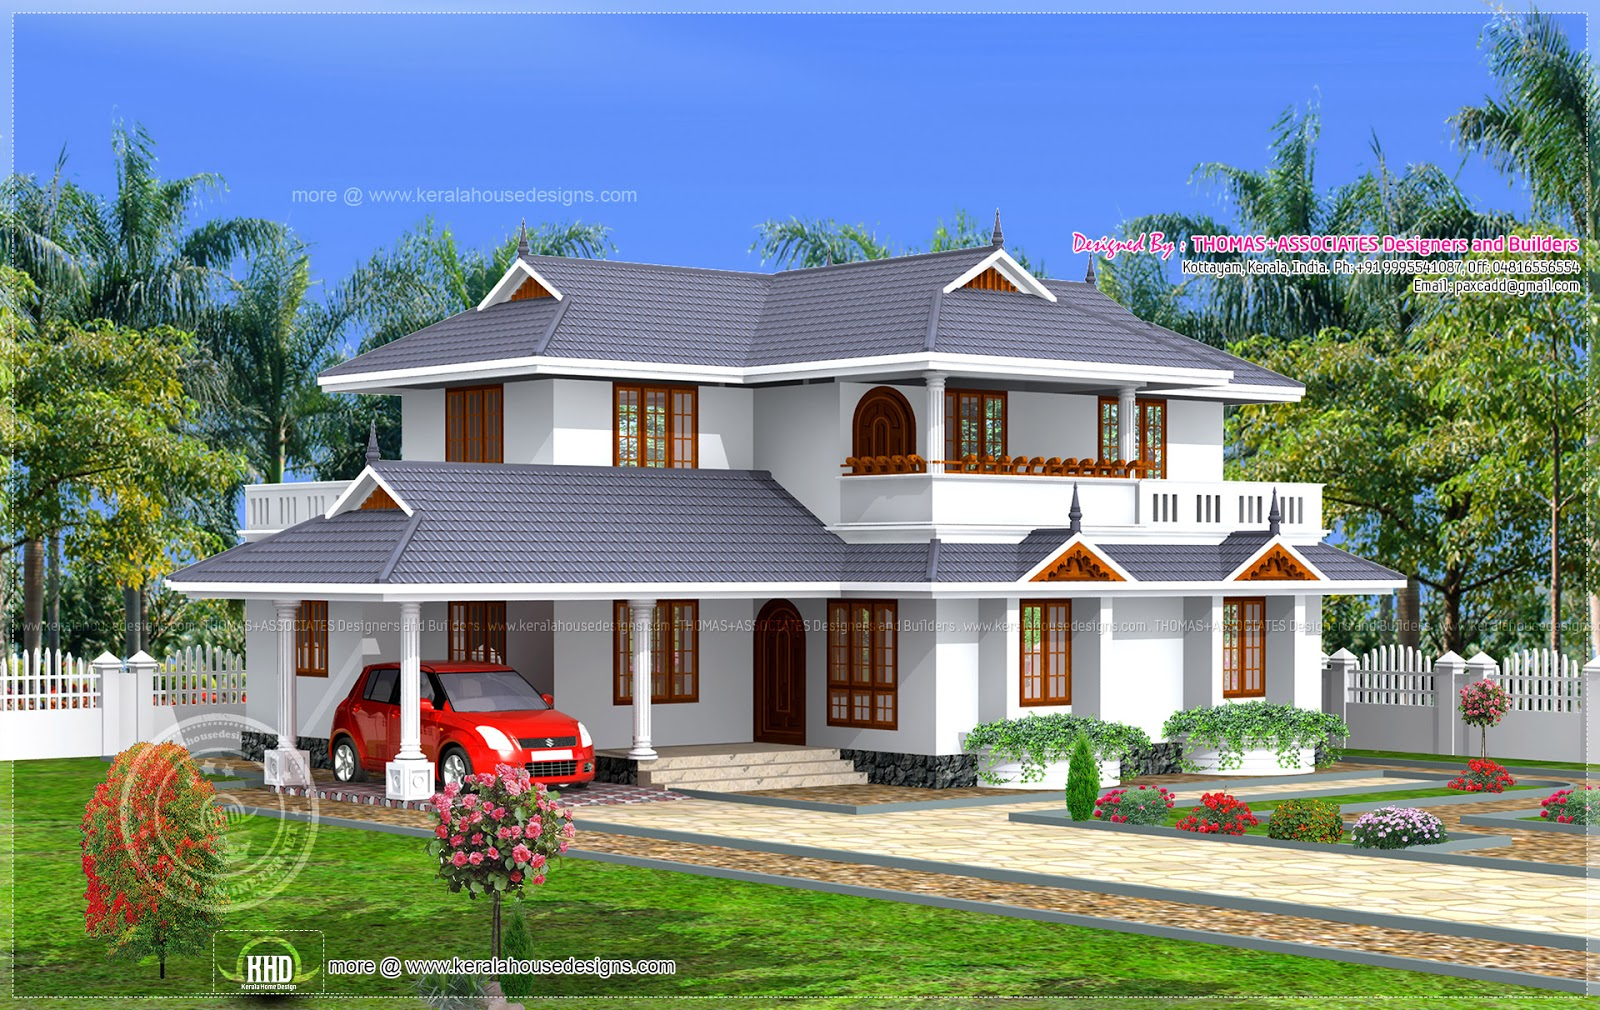 4 bedroom kerala model home in 204 home kerala for Indian house portico models